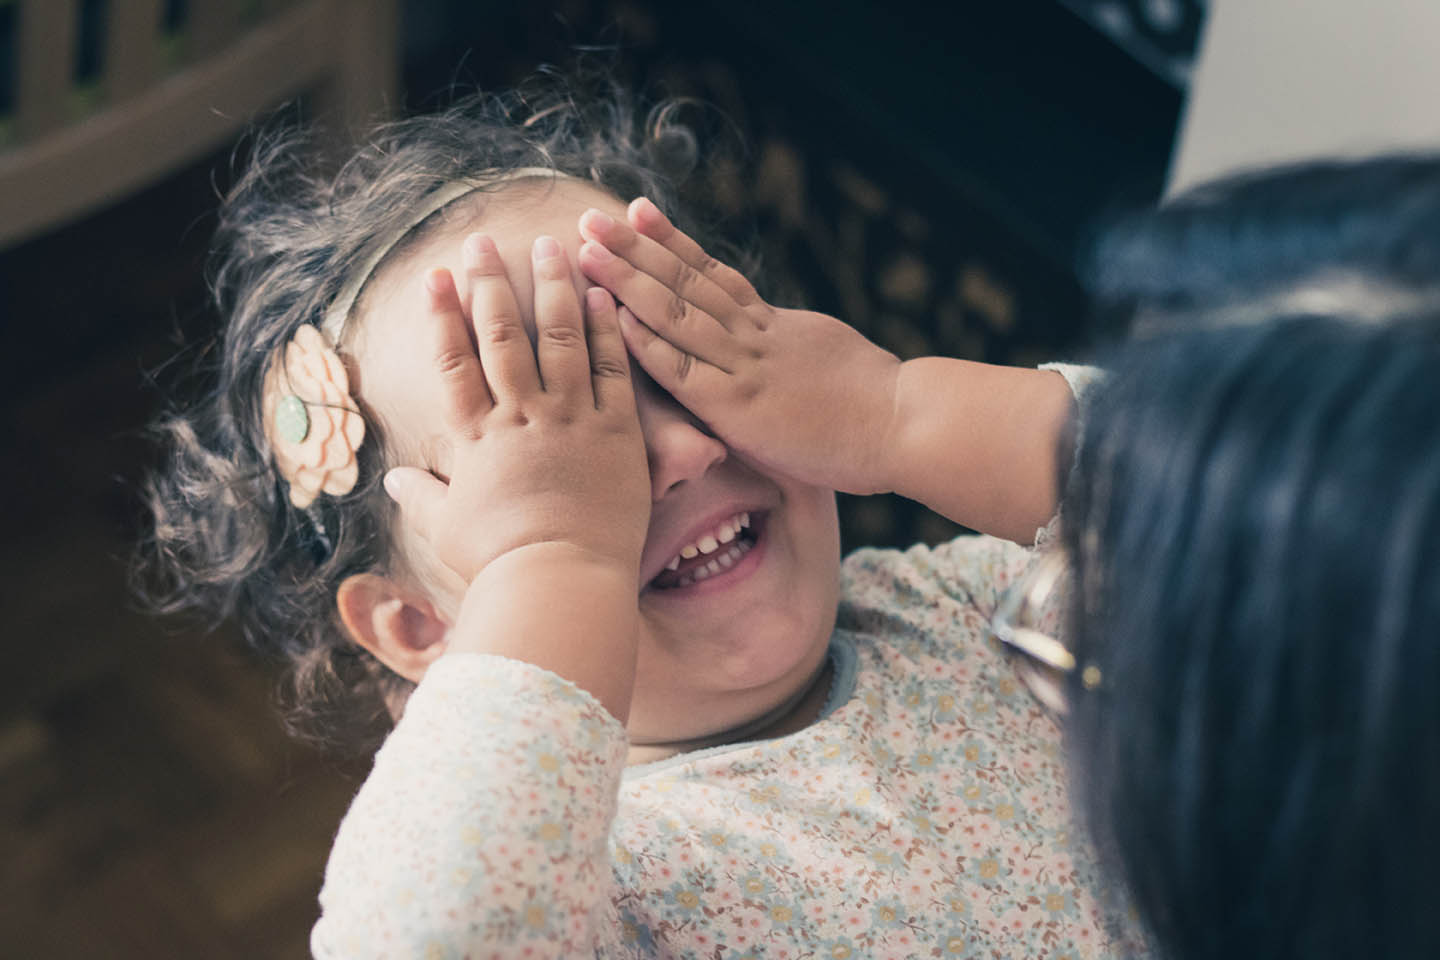 a child covers her eyes to play peek-a-boo